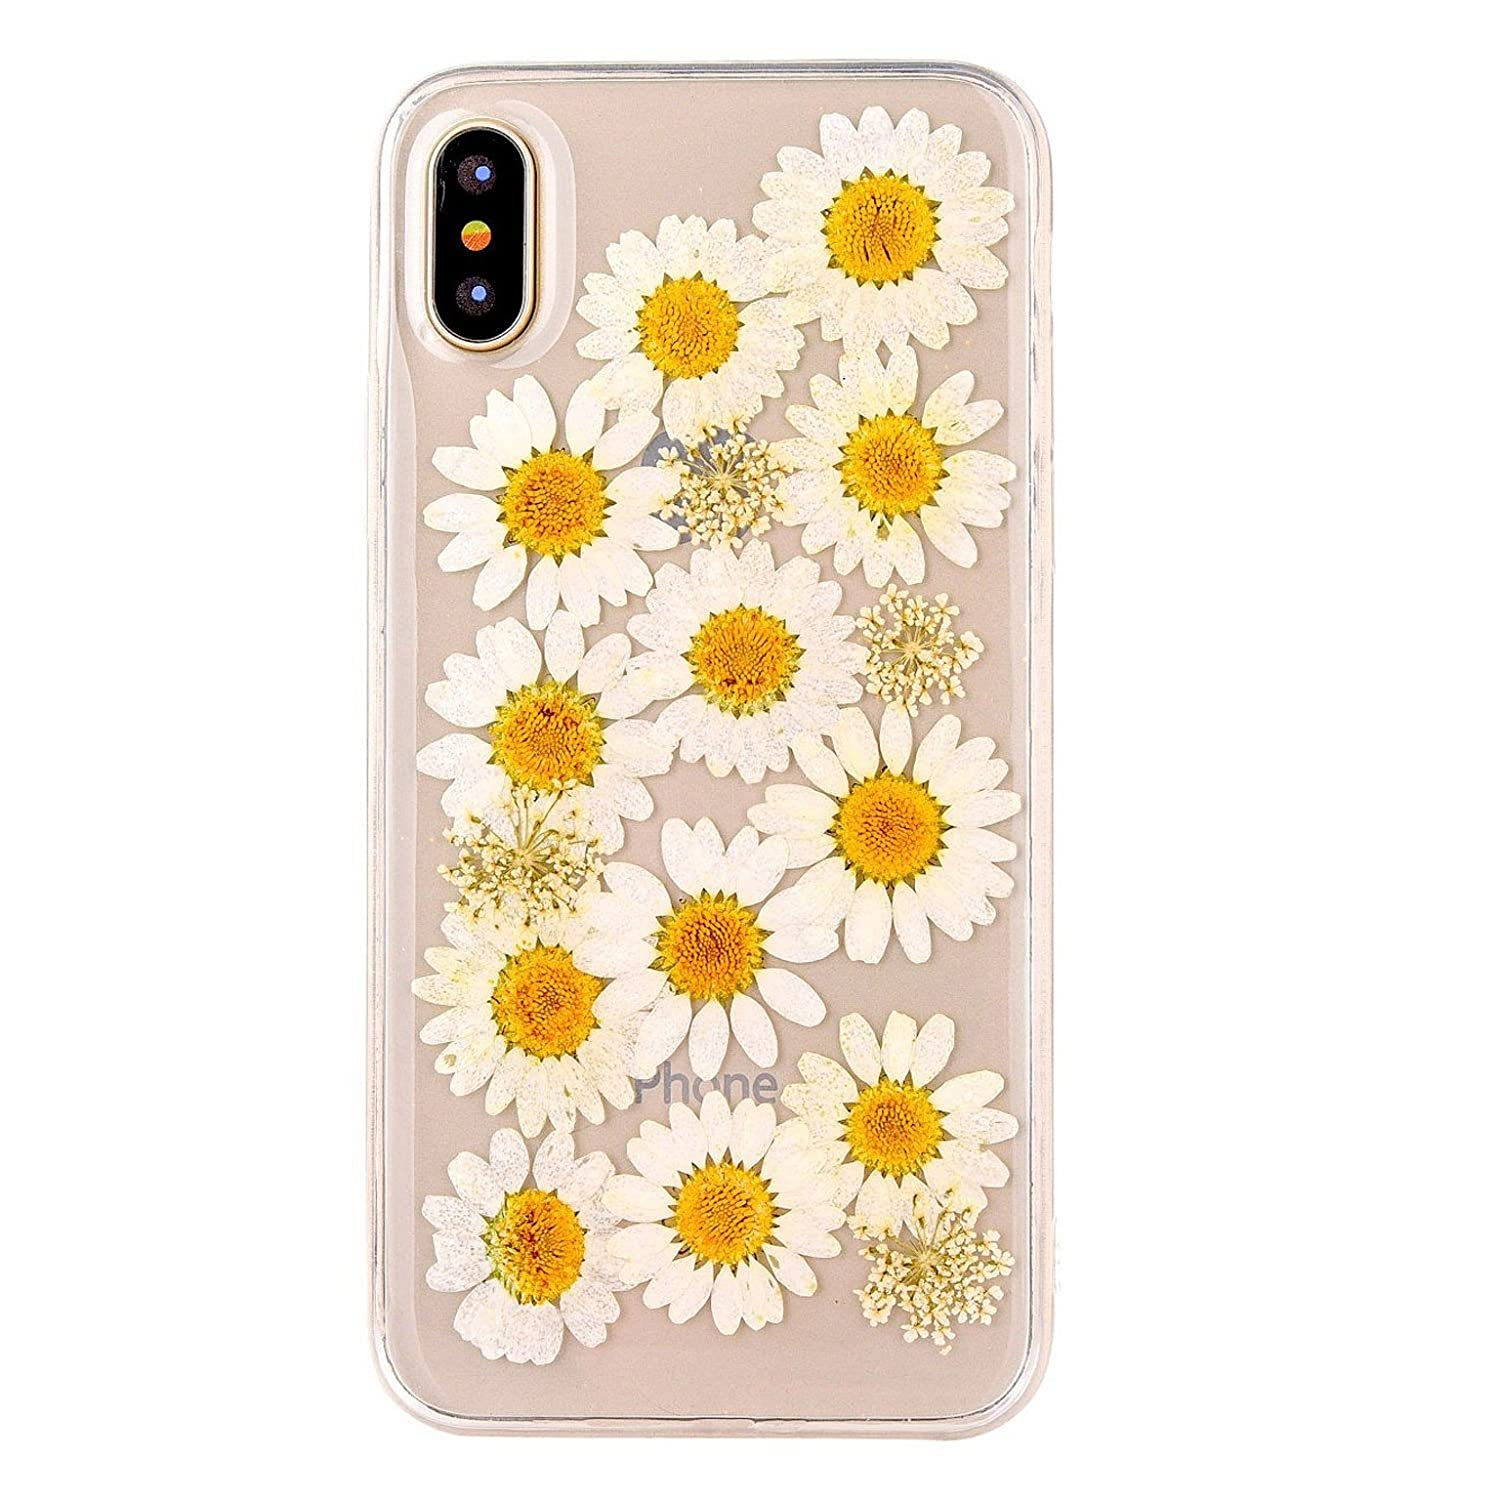 big sale 409ae 169b9 iPhone X case, TPU Case, Handmade Daisy Floral Real Pressed Dried Flowers  TPU Gel Clear Rubber Skin Silicone Protective Plastic Soft Back Phone Case  ...